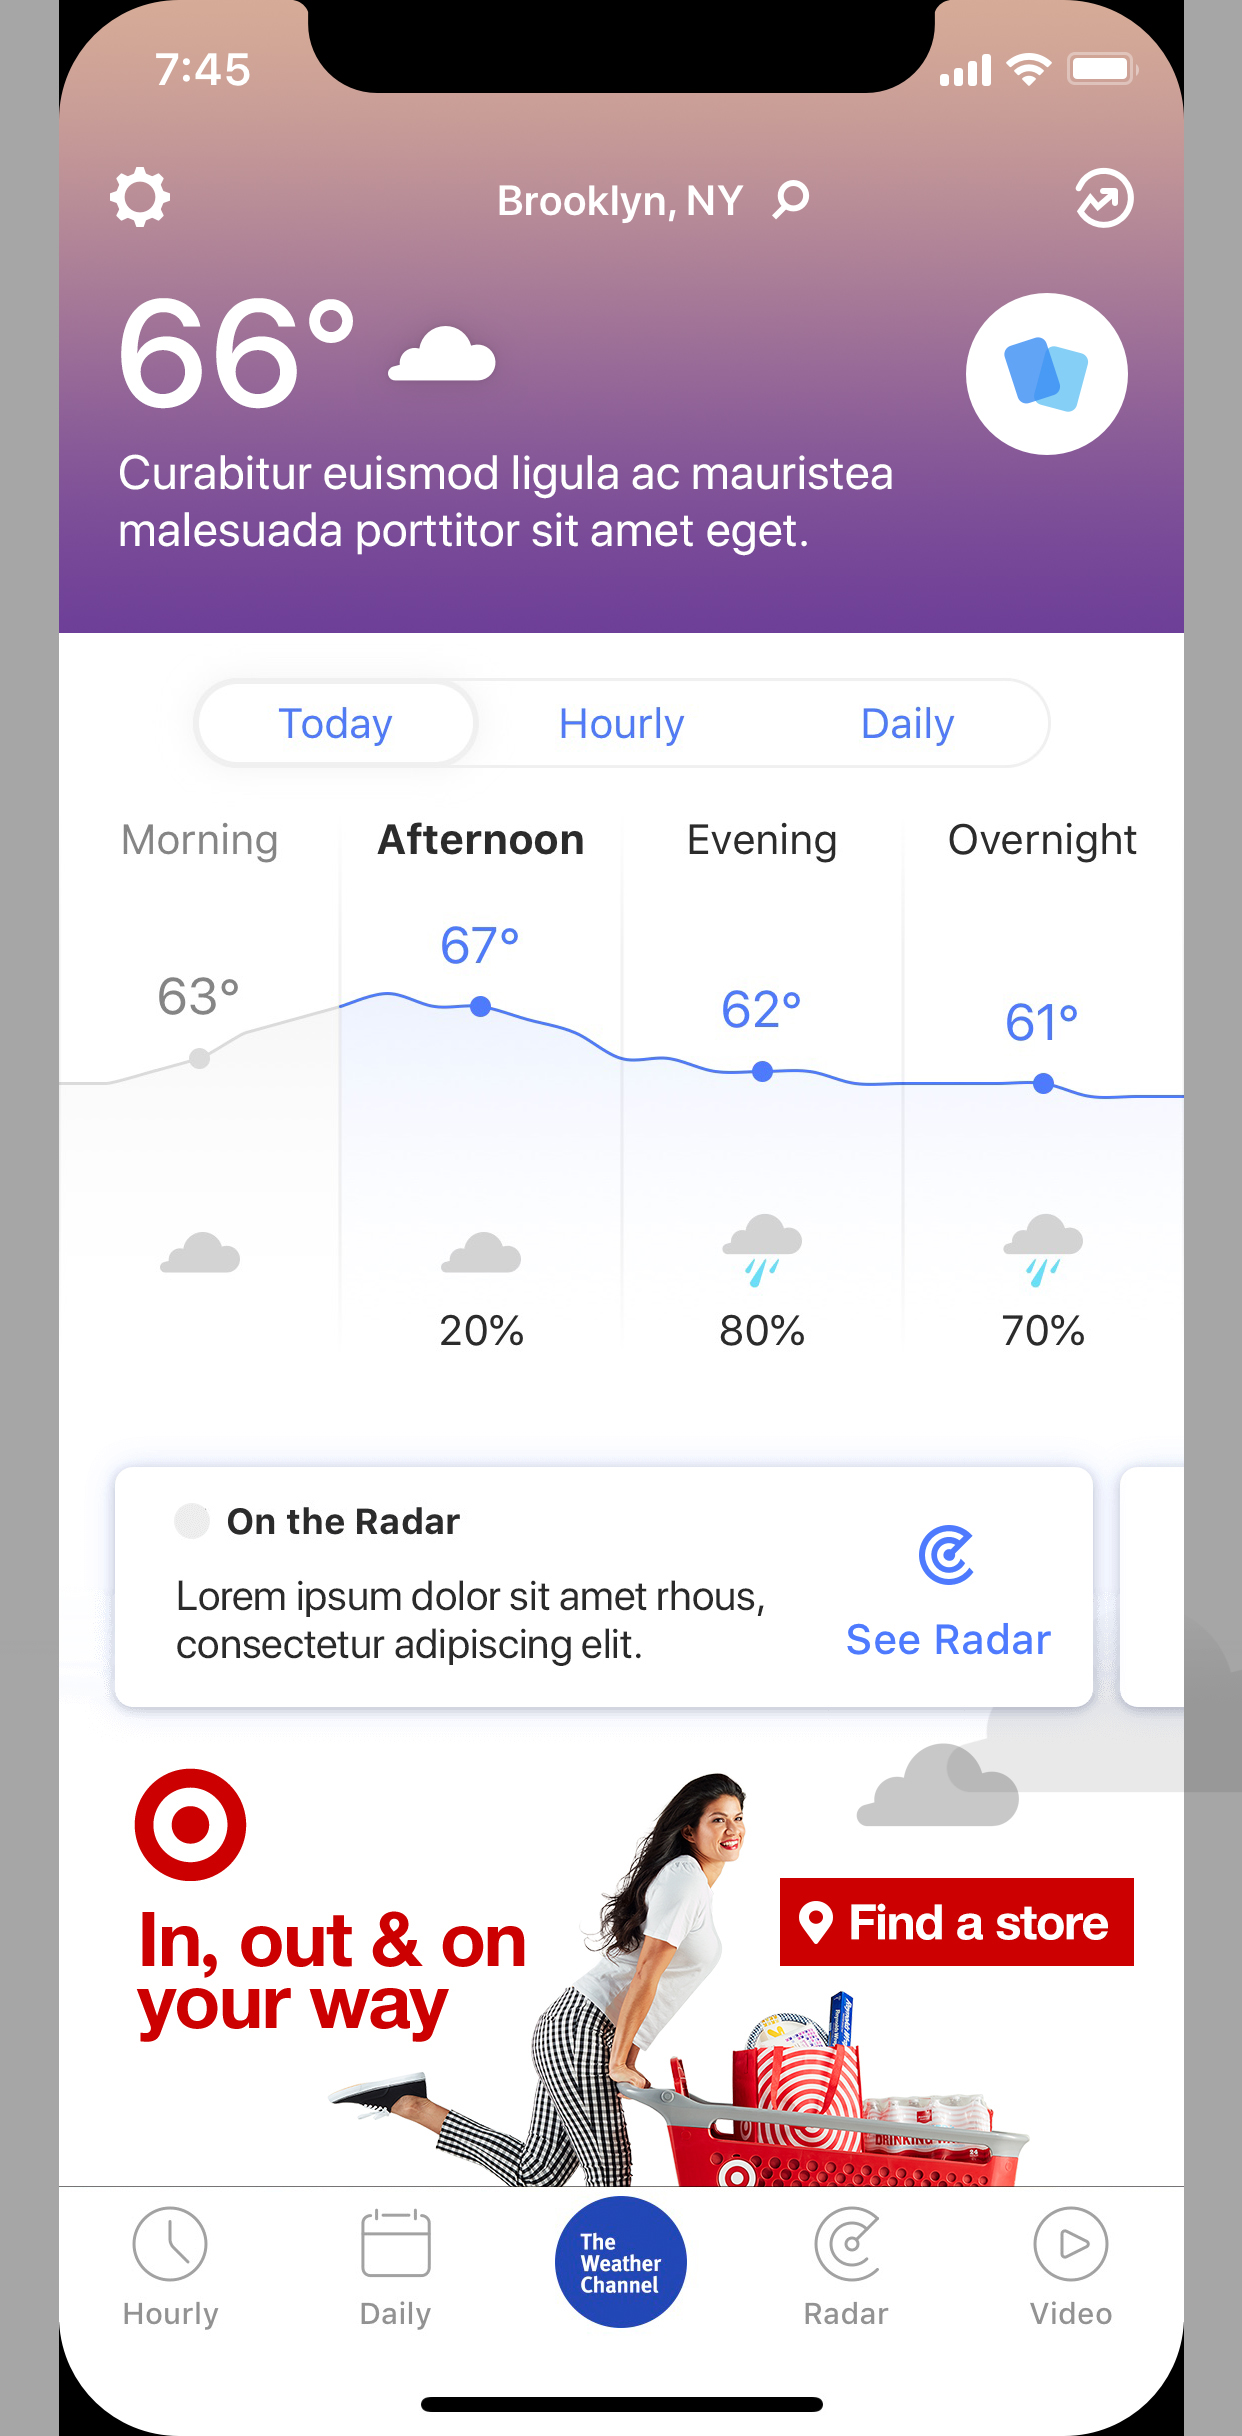 Target_Locator_0003_Cloudy Day